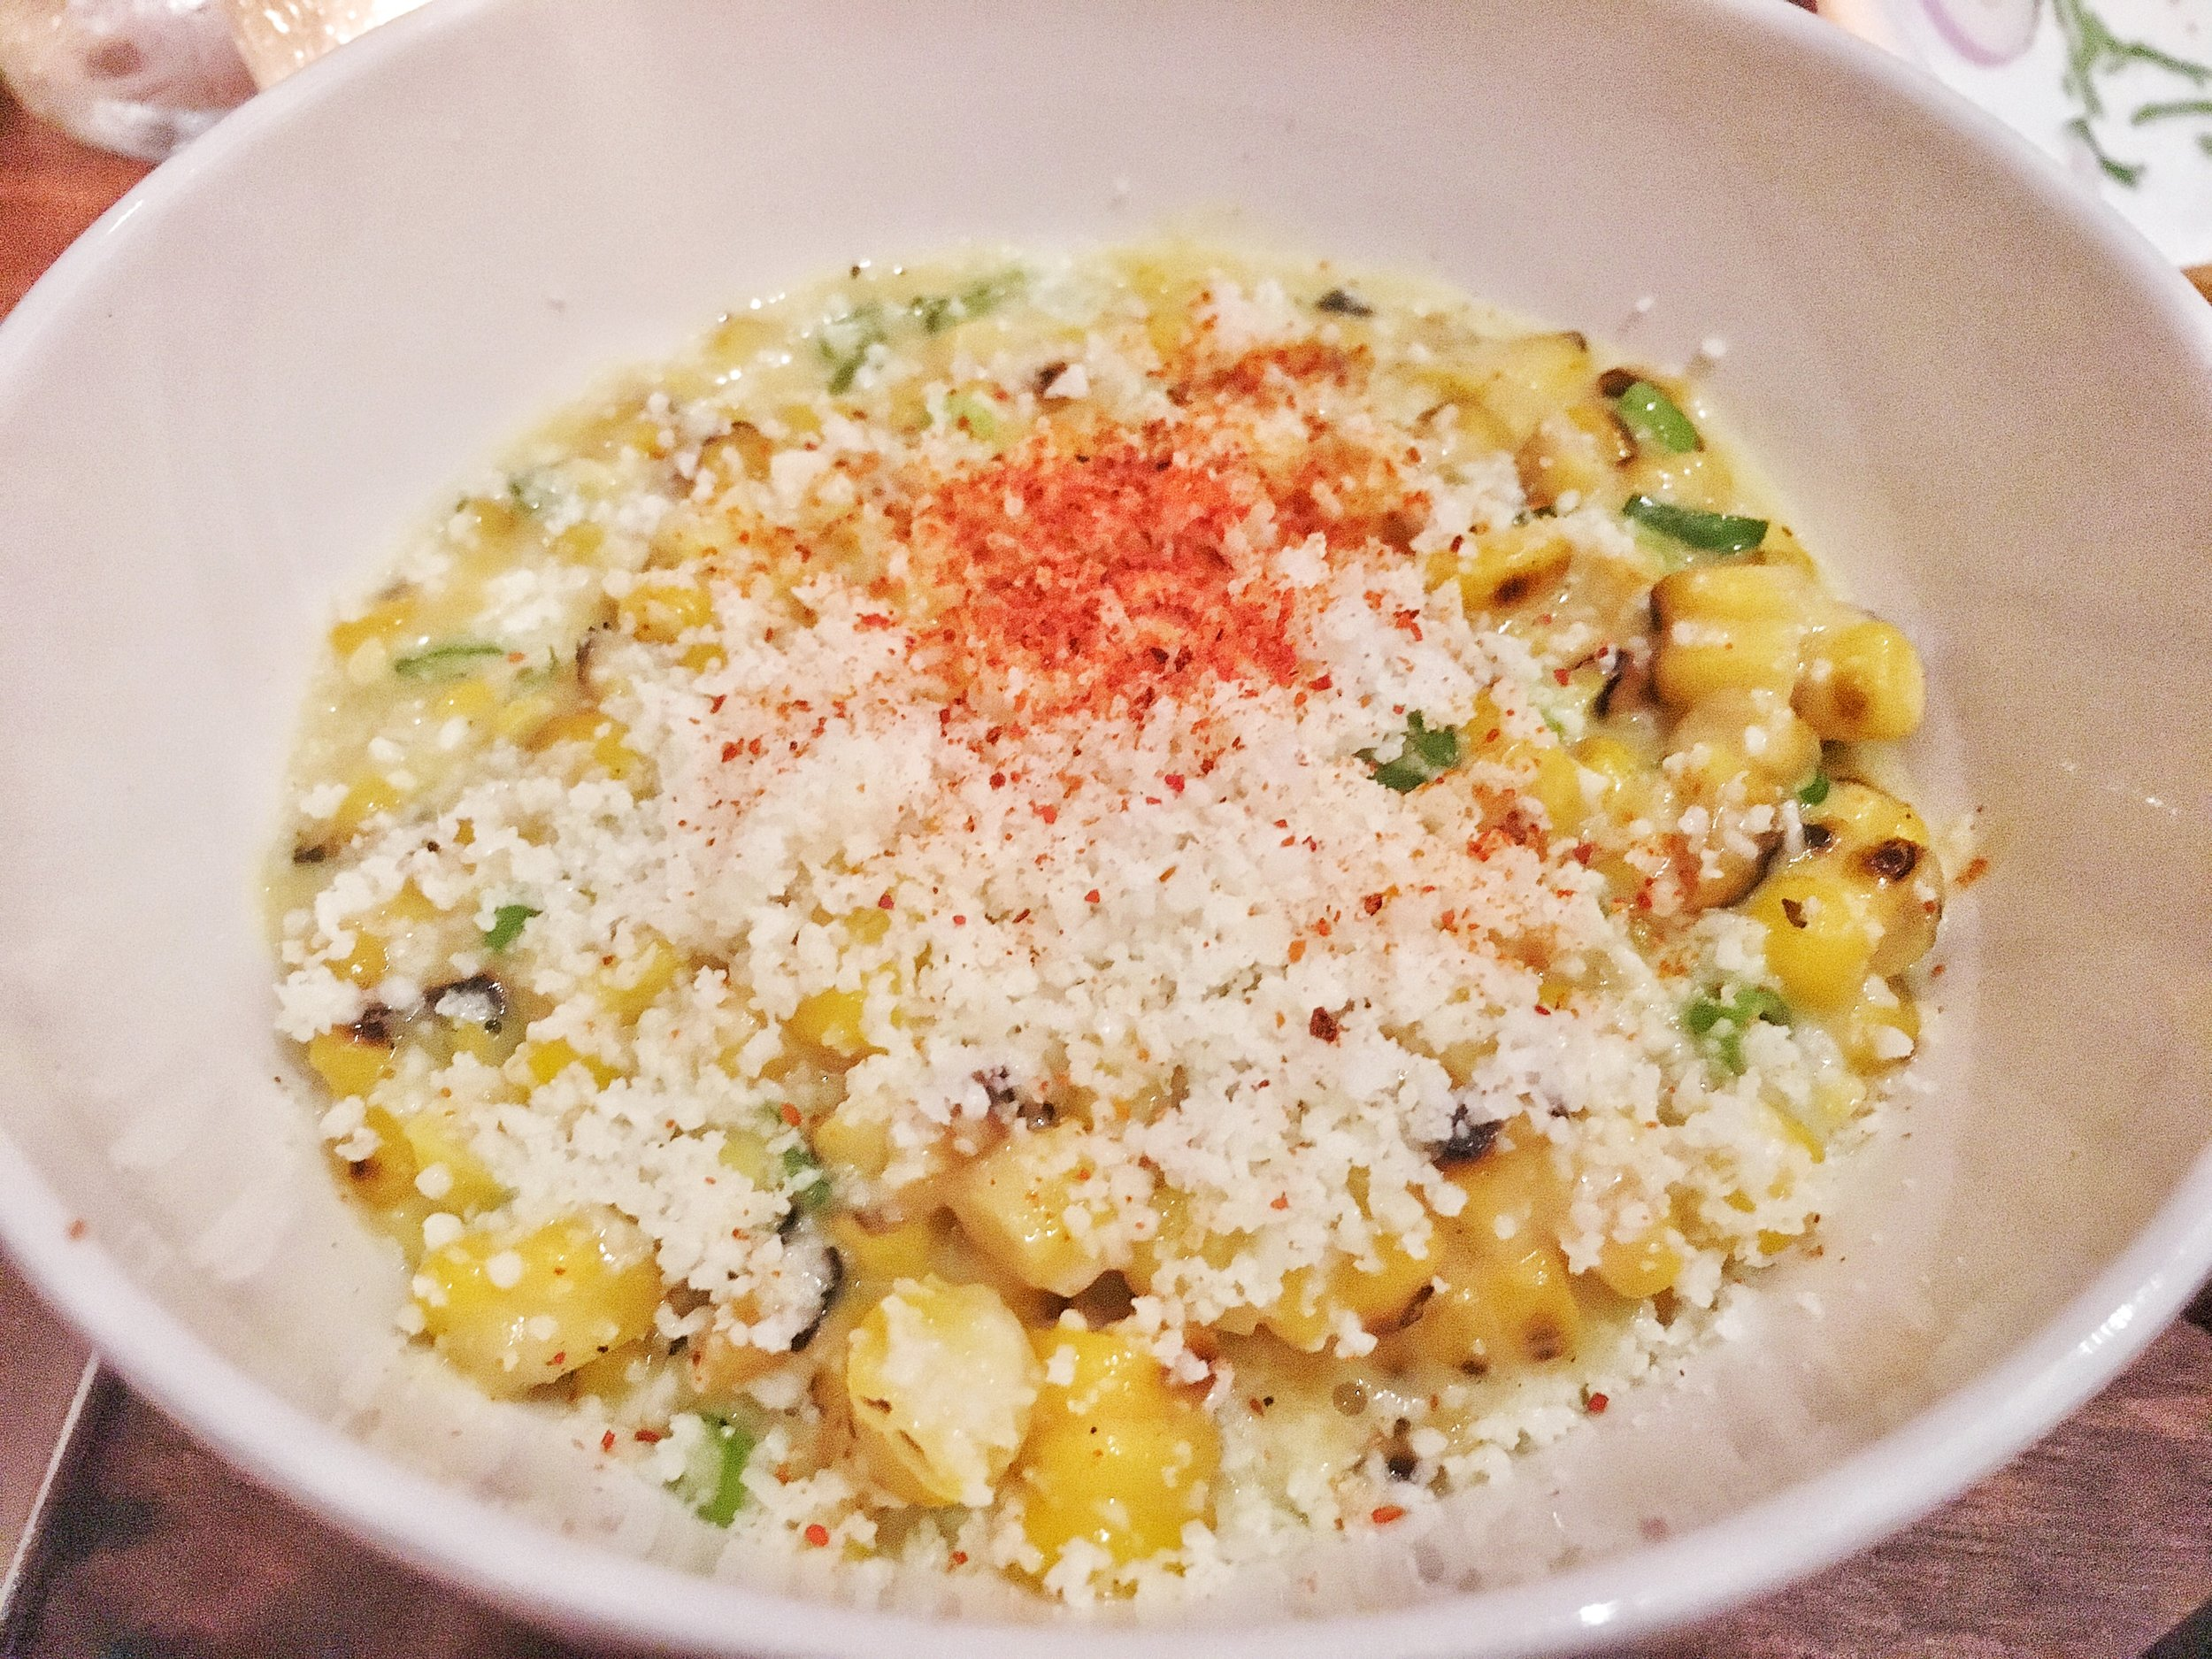 Off the cob new jersey cream of corn, scallion, cotija cheese